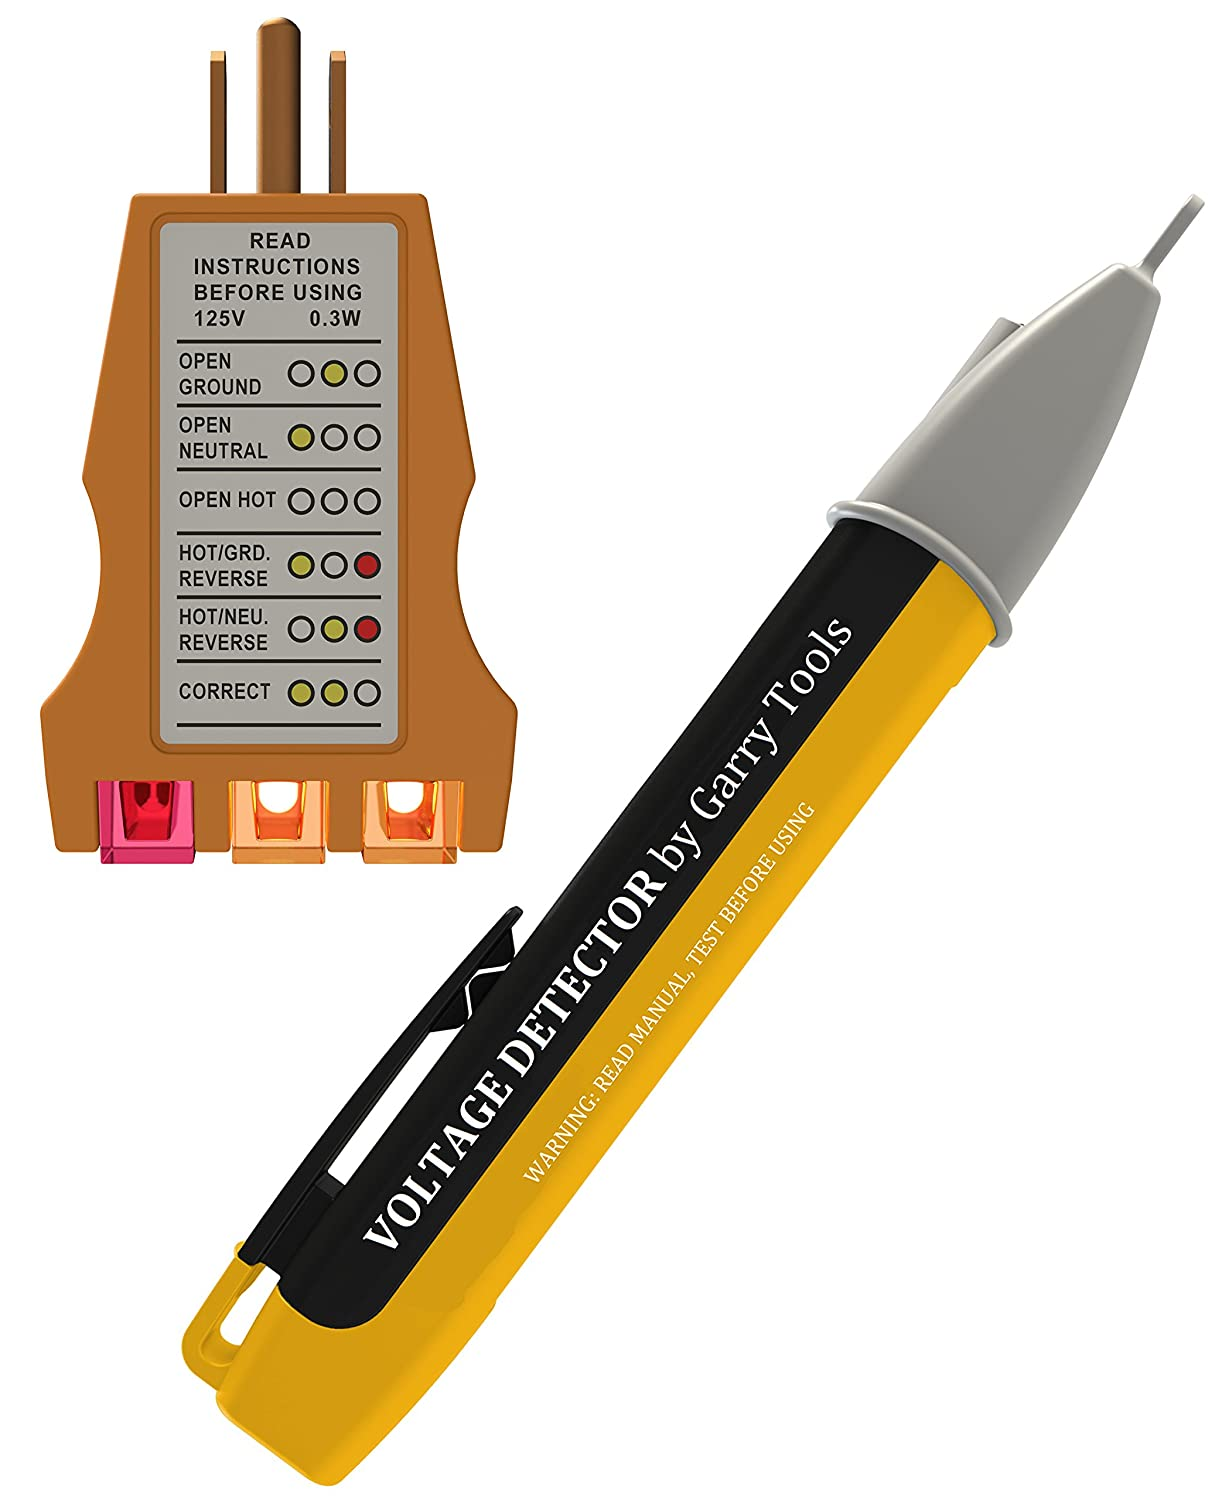 Ac Voltage Wire Identifier Tool : Electrical outlet tester and voltage detector pen set